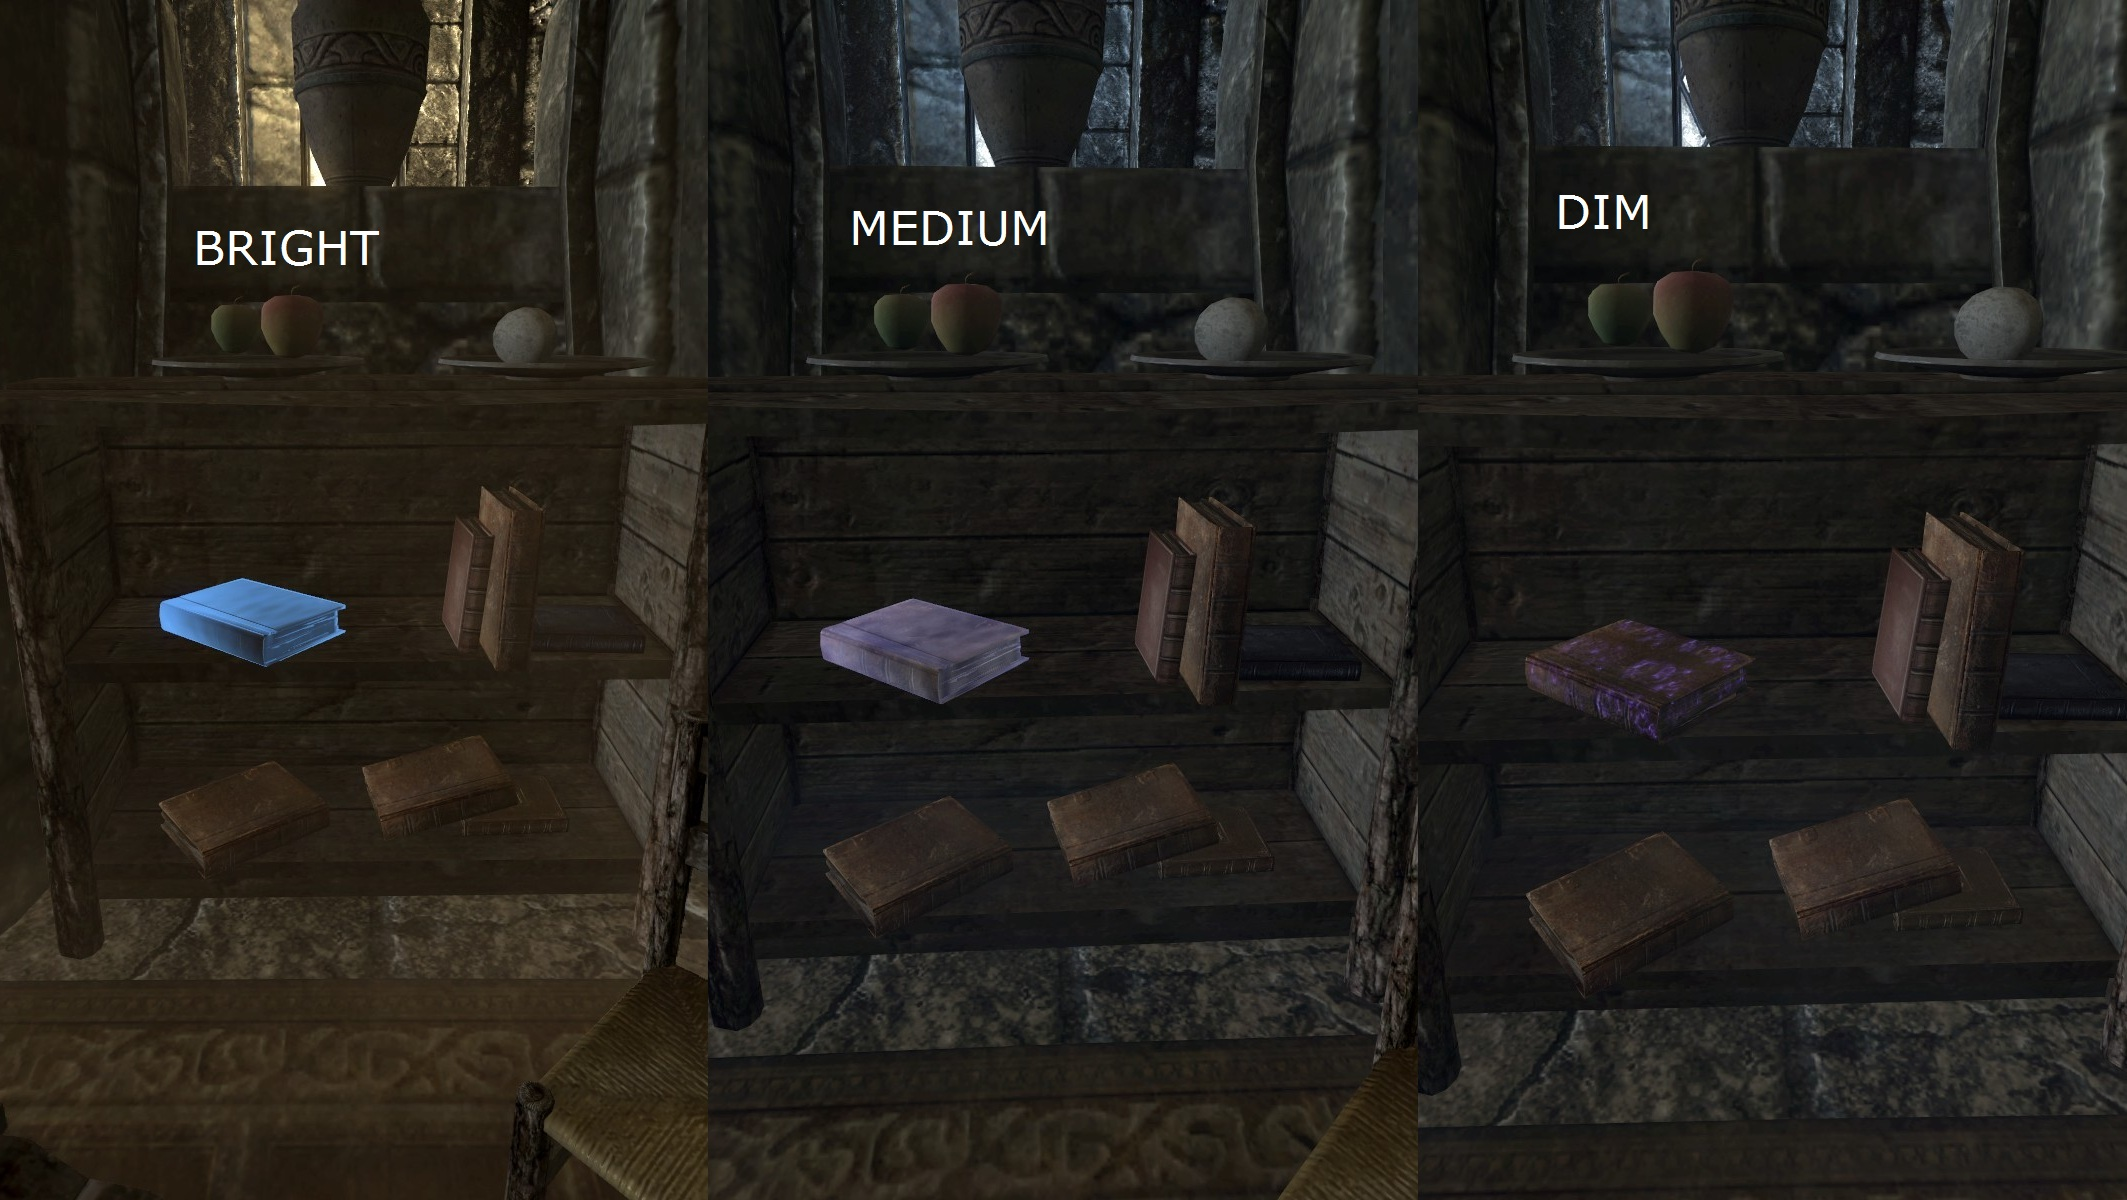 Libros Skyrim Unread Books Glow Sse Spanish At Skyrim Special Edition